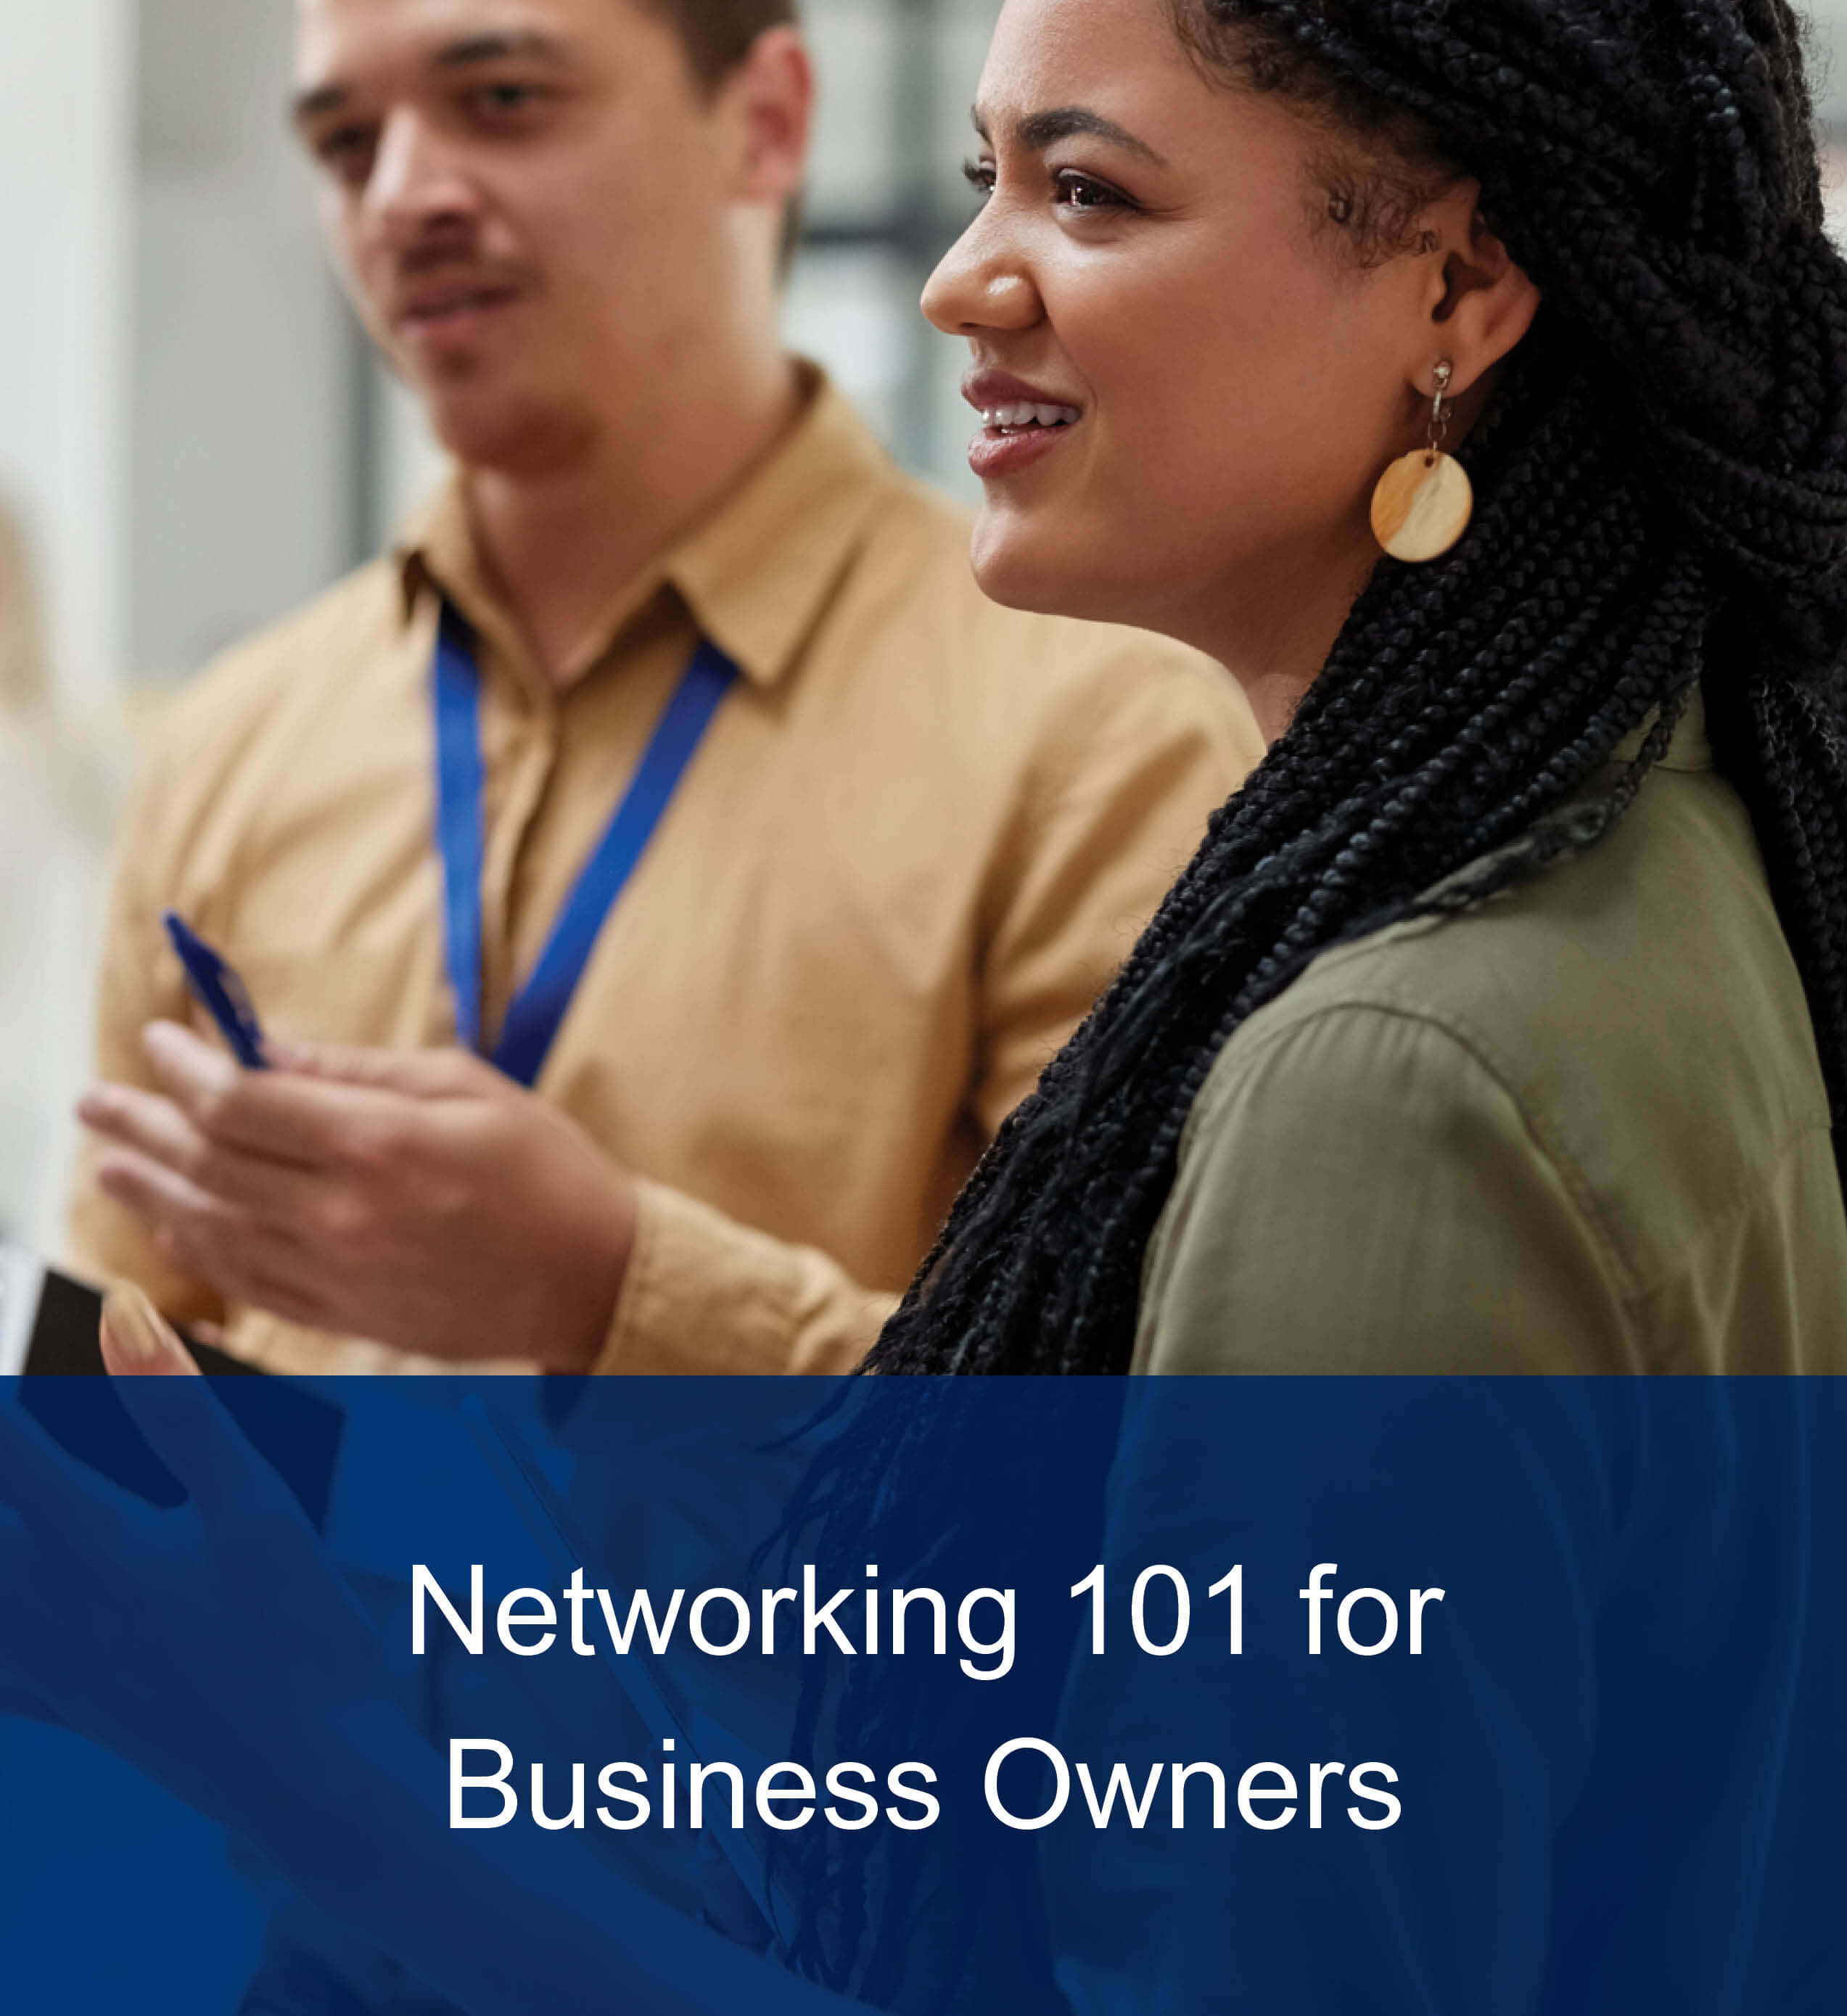 Networking 101 for business owners